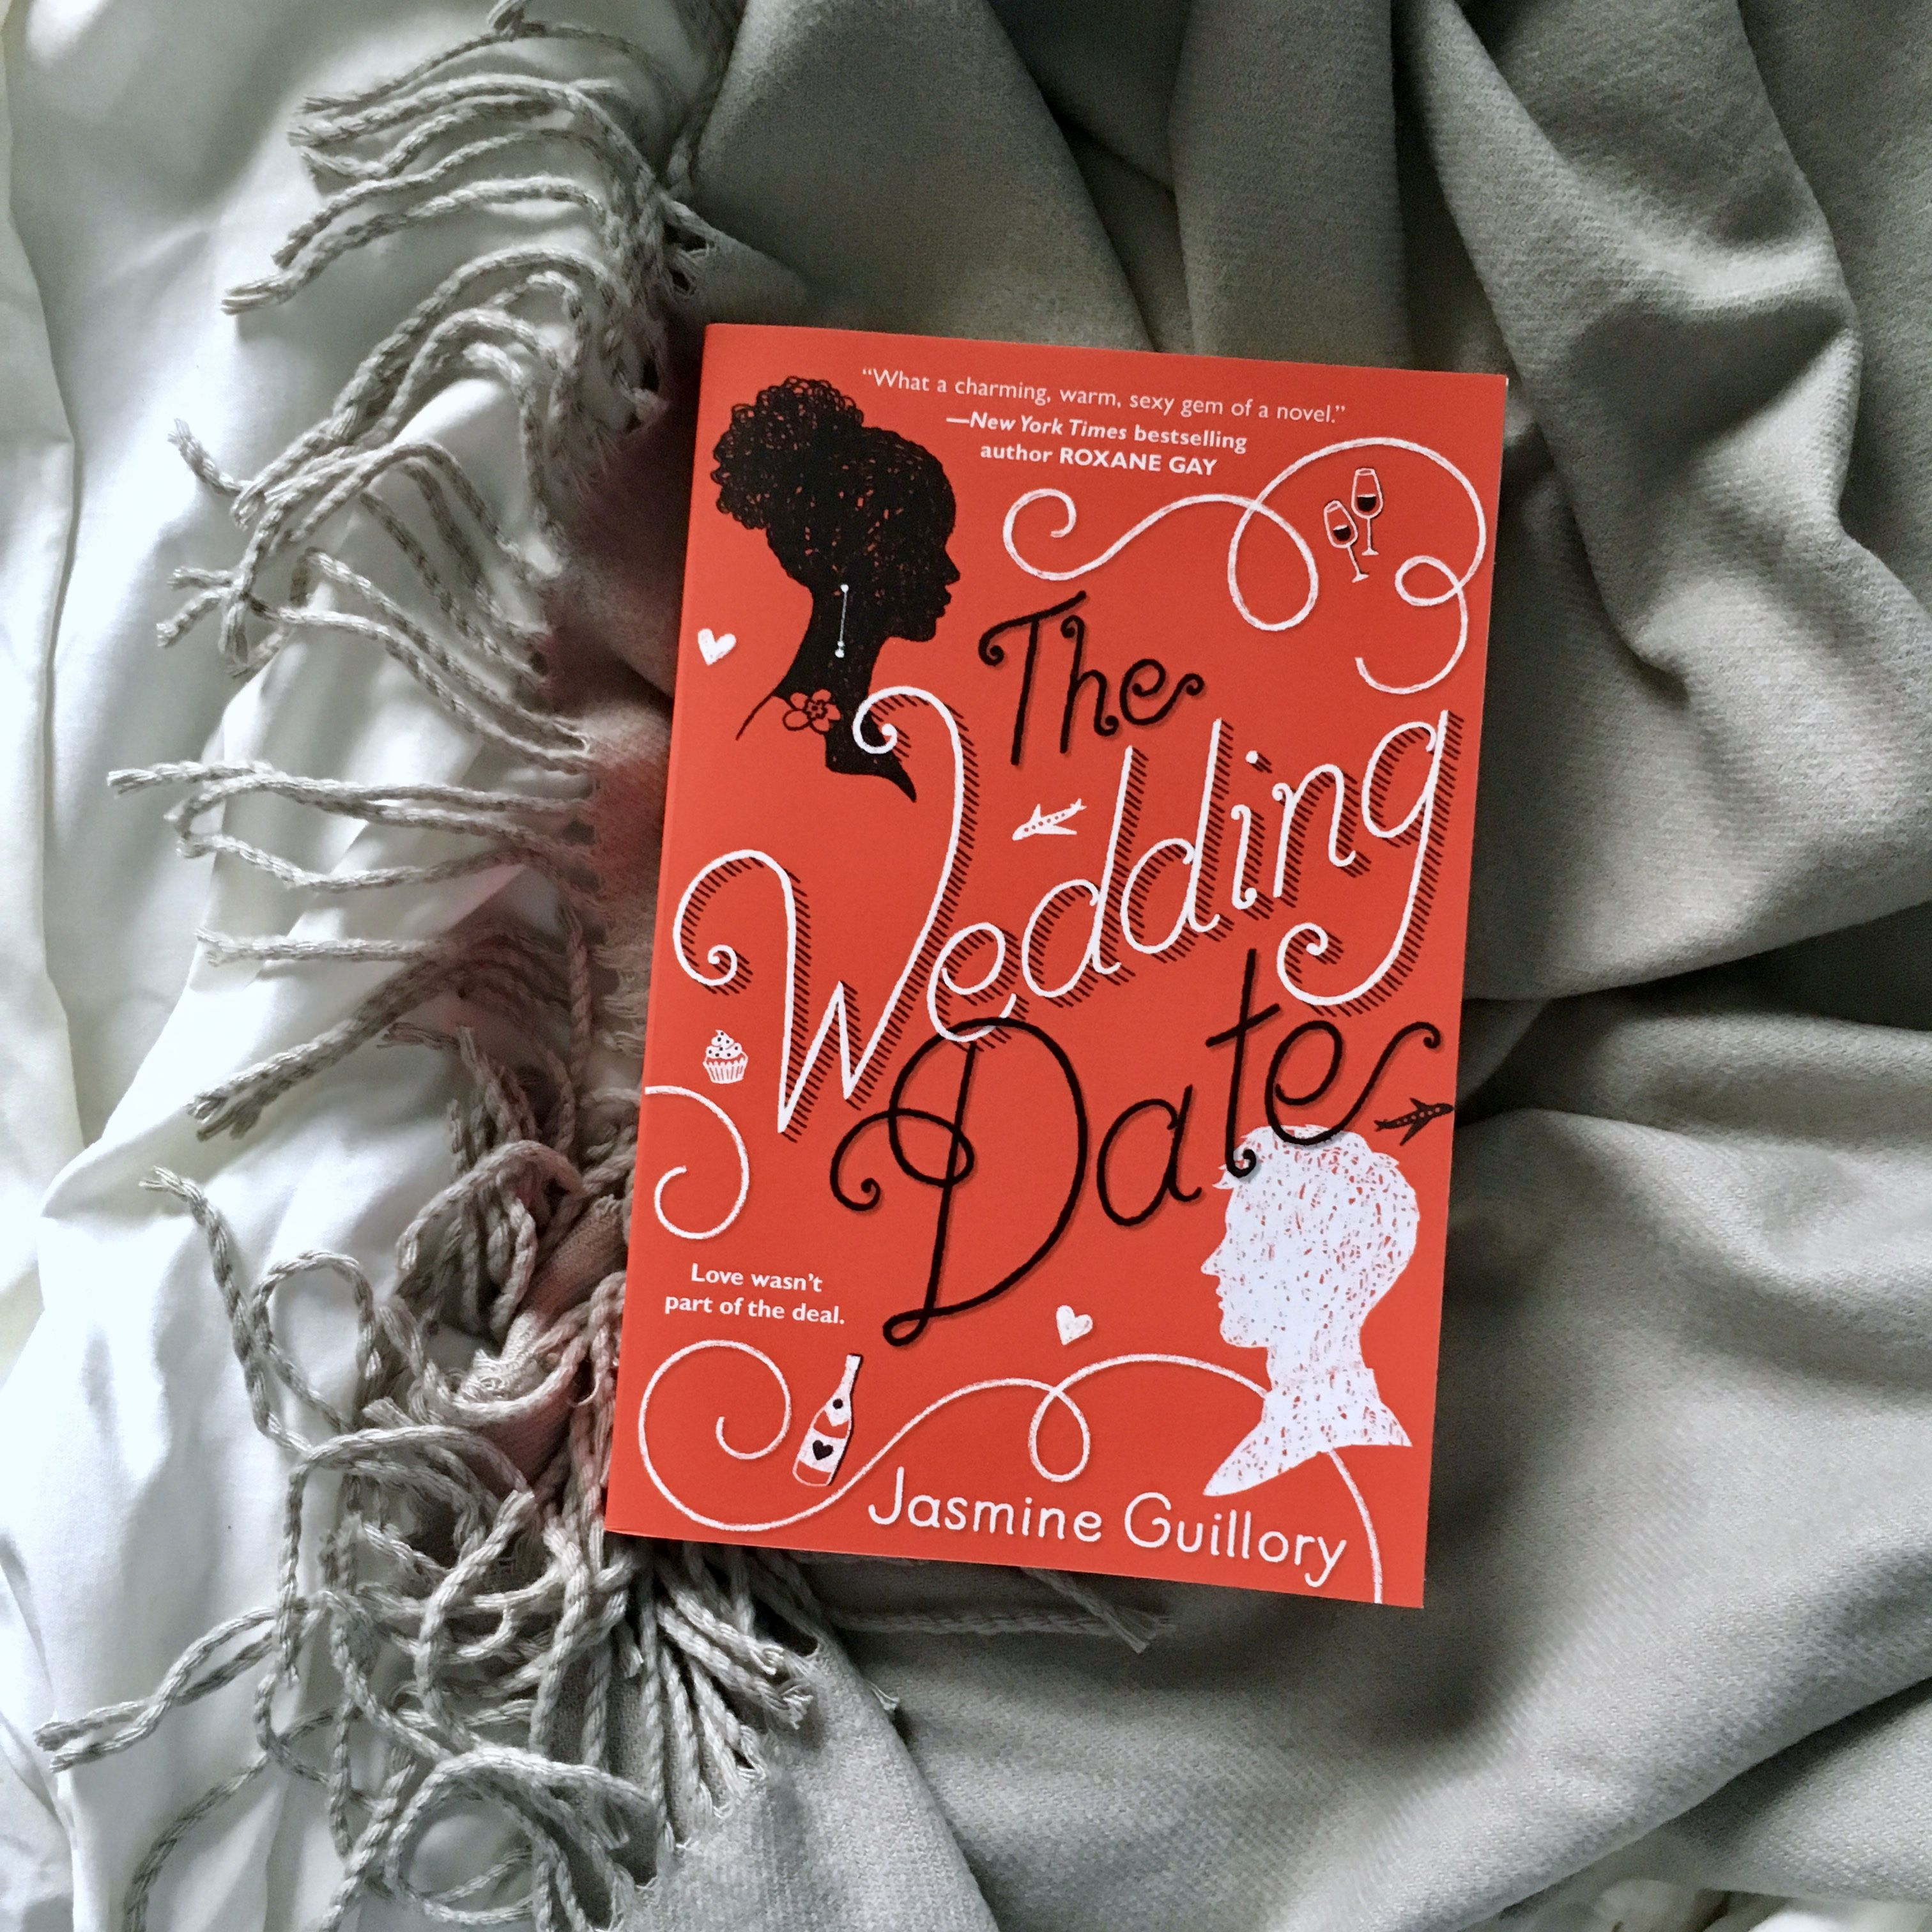 [Review] The Wedding Date by Jasmine Guillory The